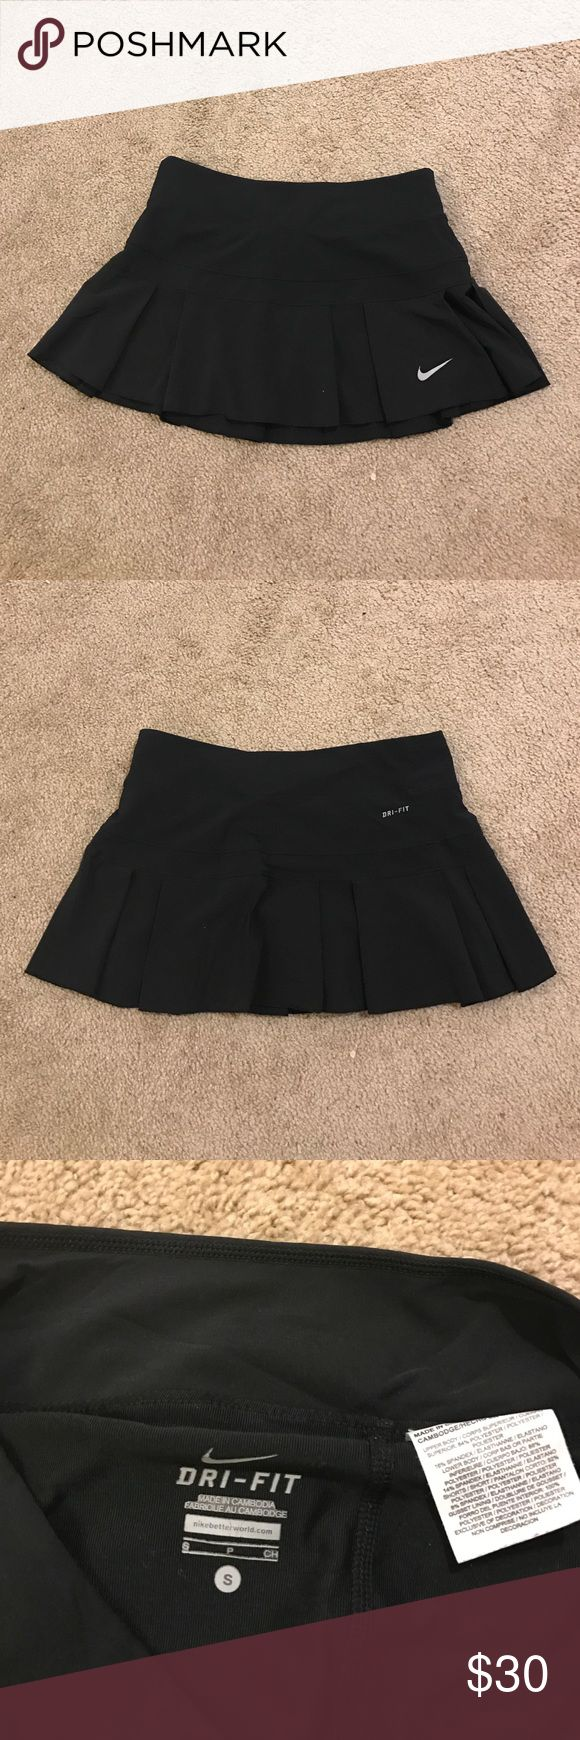 Black Nike Skirt This is a really cute Nike skirt with shorts built in. I wore it to play tennis but you could use it for running as well. It is is really good condition, it's just too small for me now. Feel free to make an offer! Nike Skirts